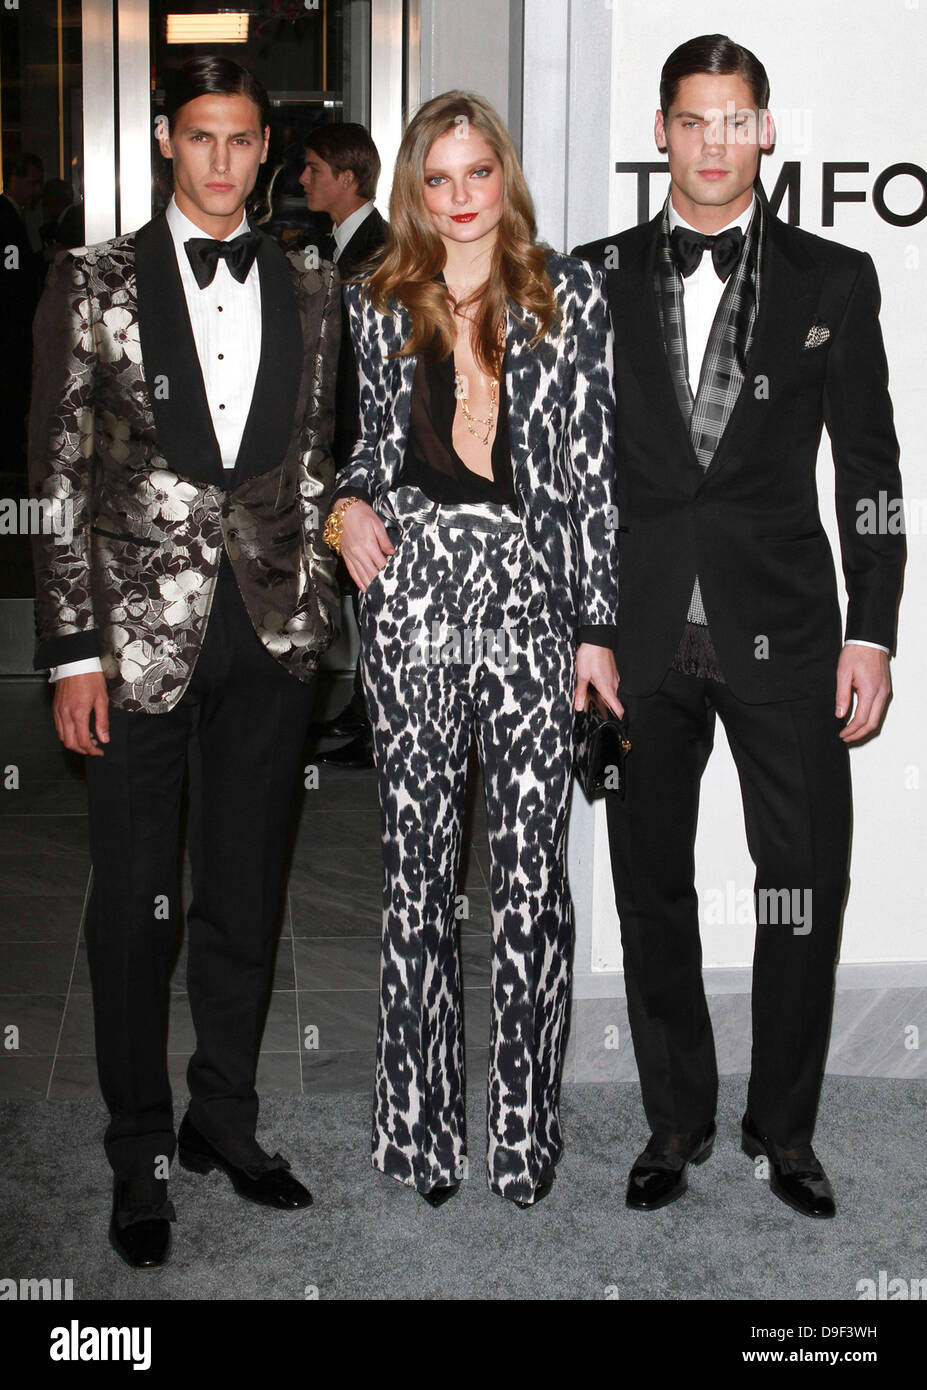 Tom ford models tom ford flagship store opening celebration beverly hills california 24 02 11